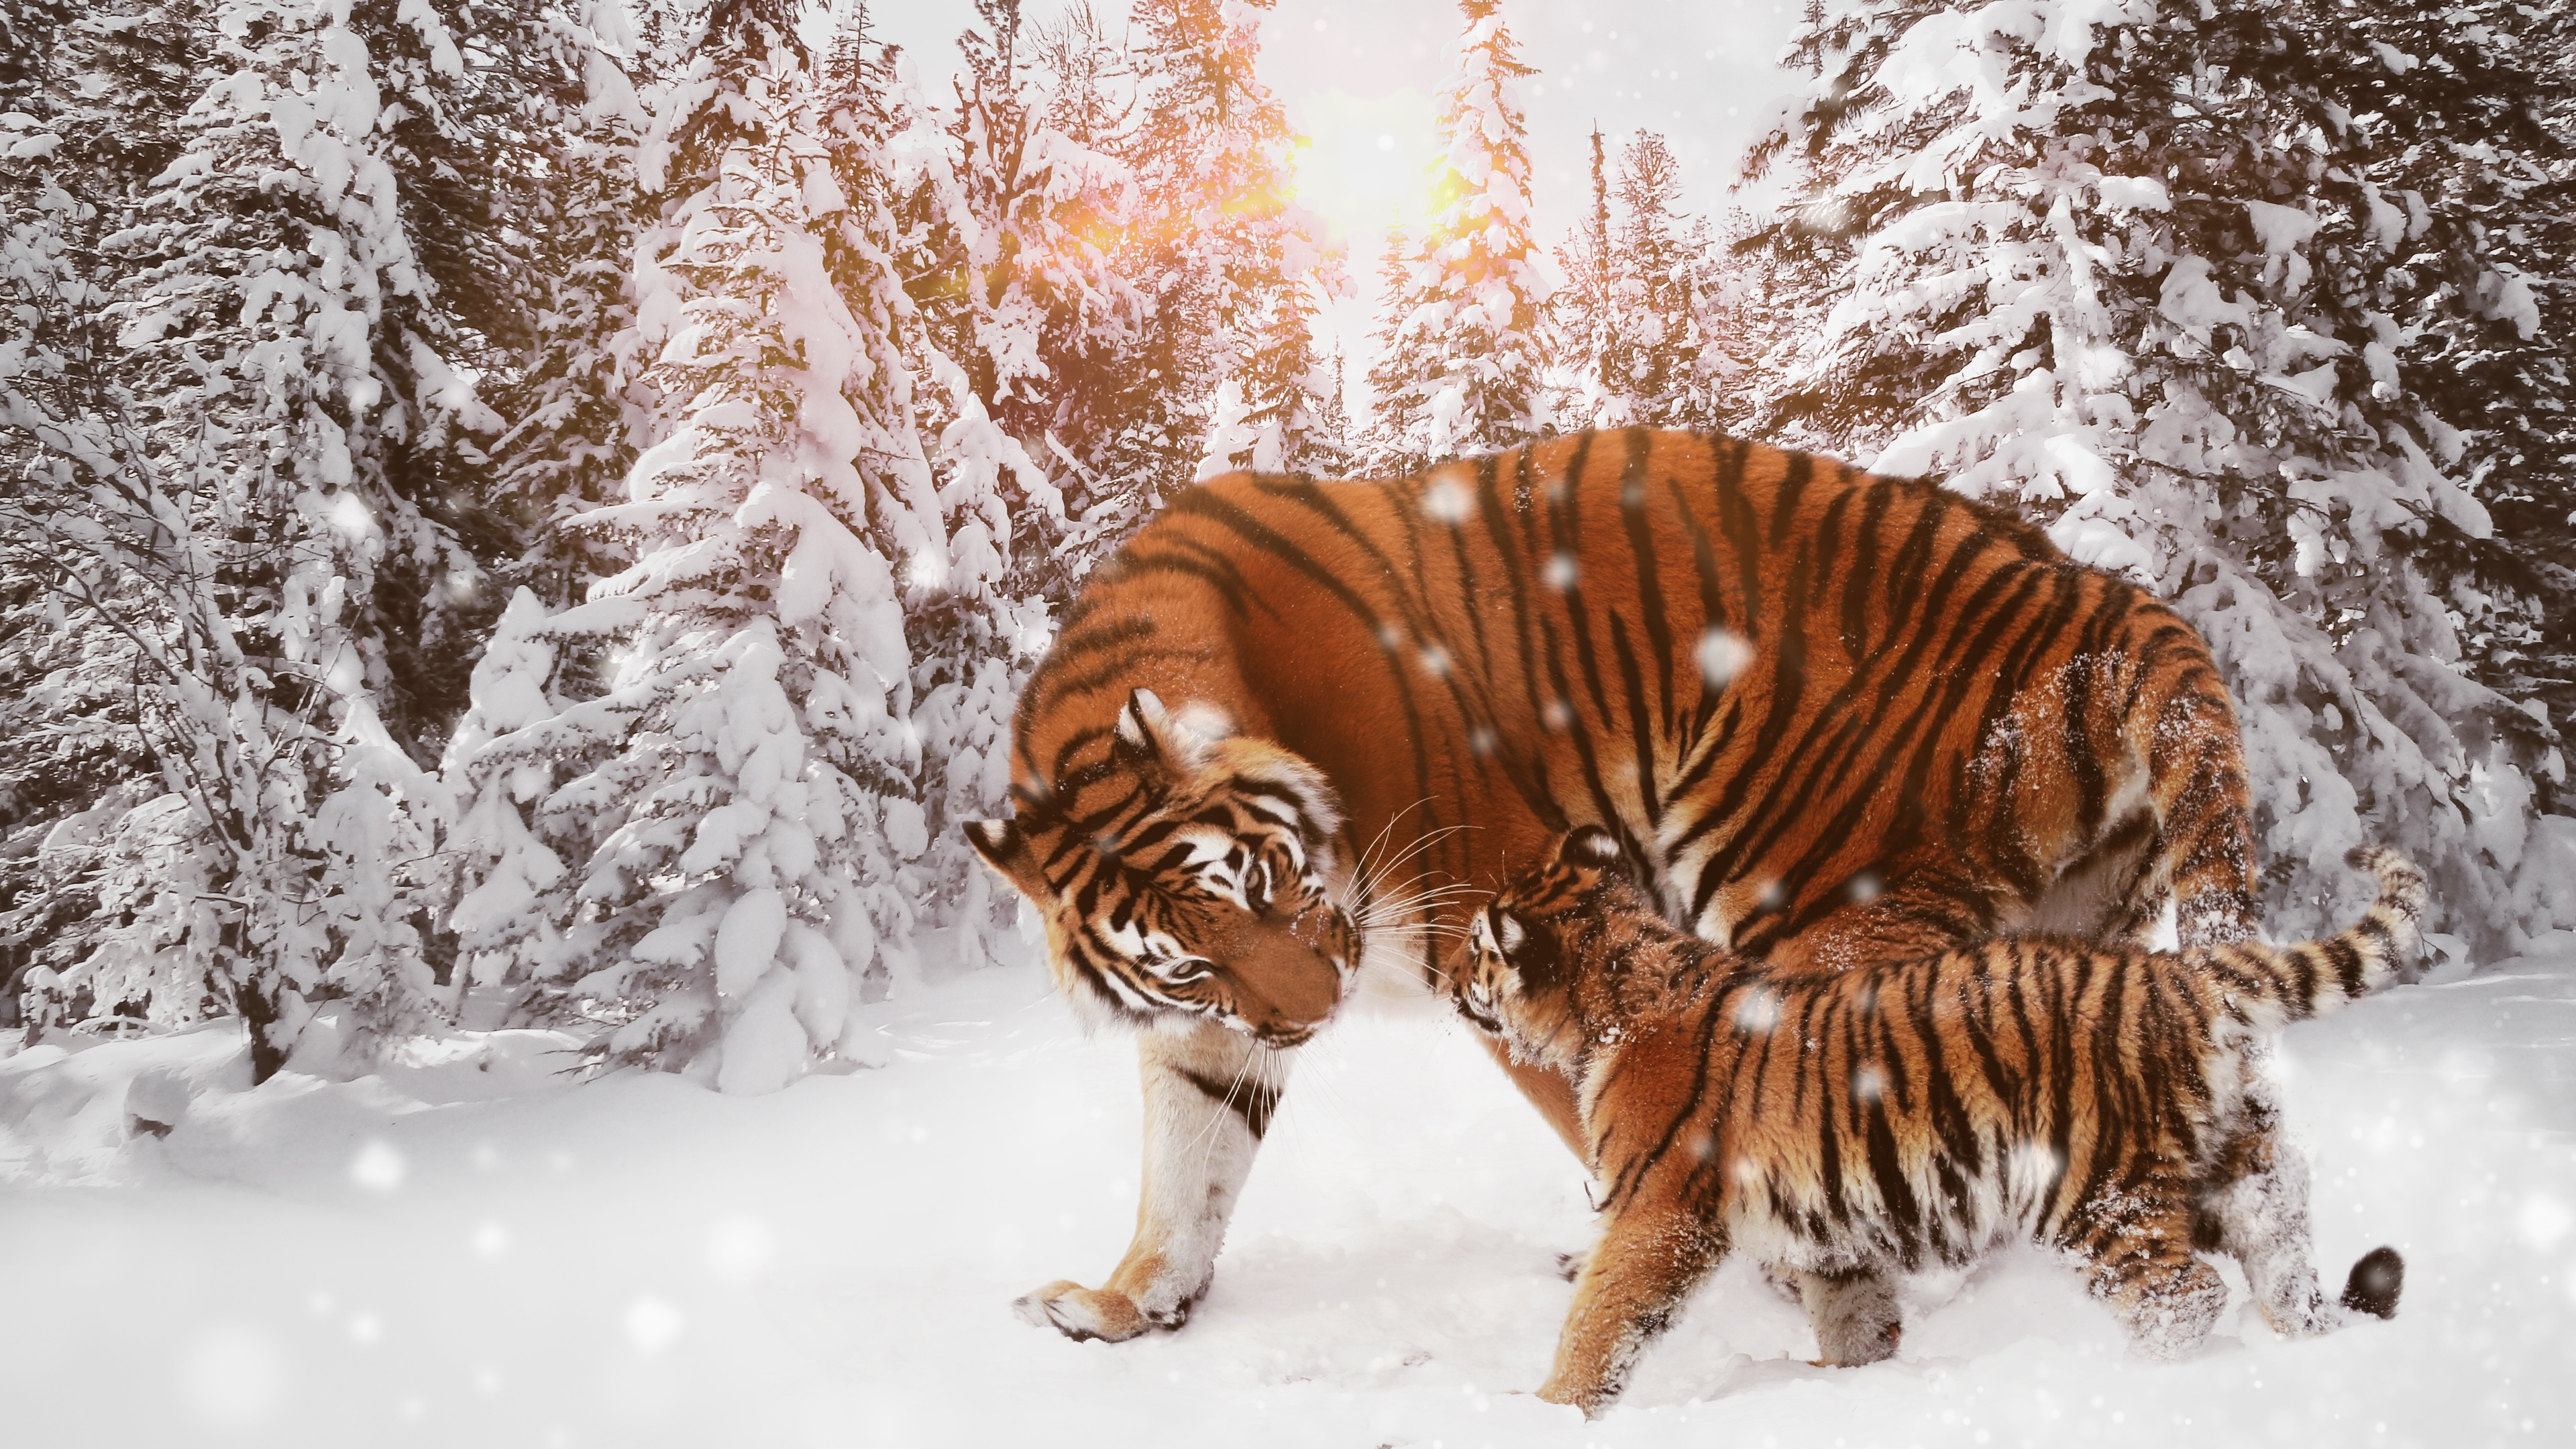 Wallpaper 4k Tiger With Cub 4k 4k Wallpapers 5k Wallpapers 8k Wallpapers Animals Wallpapers Cub Wallpapers Hd Wallpapers Snow Wallpapers Tiger Wallpapers Winter Wallpapers